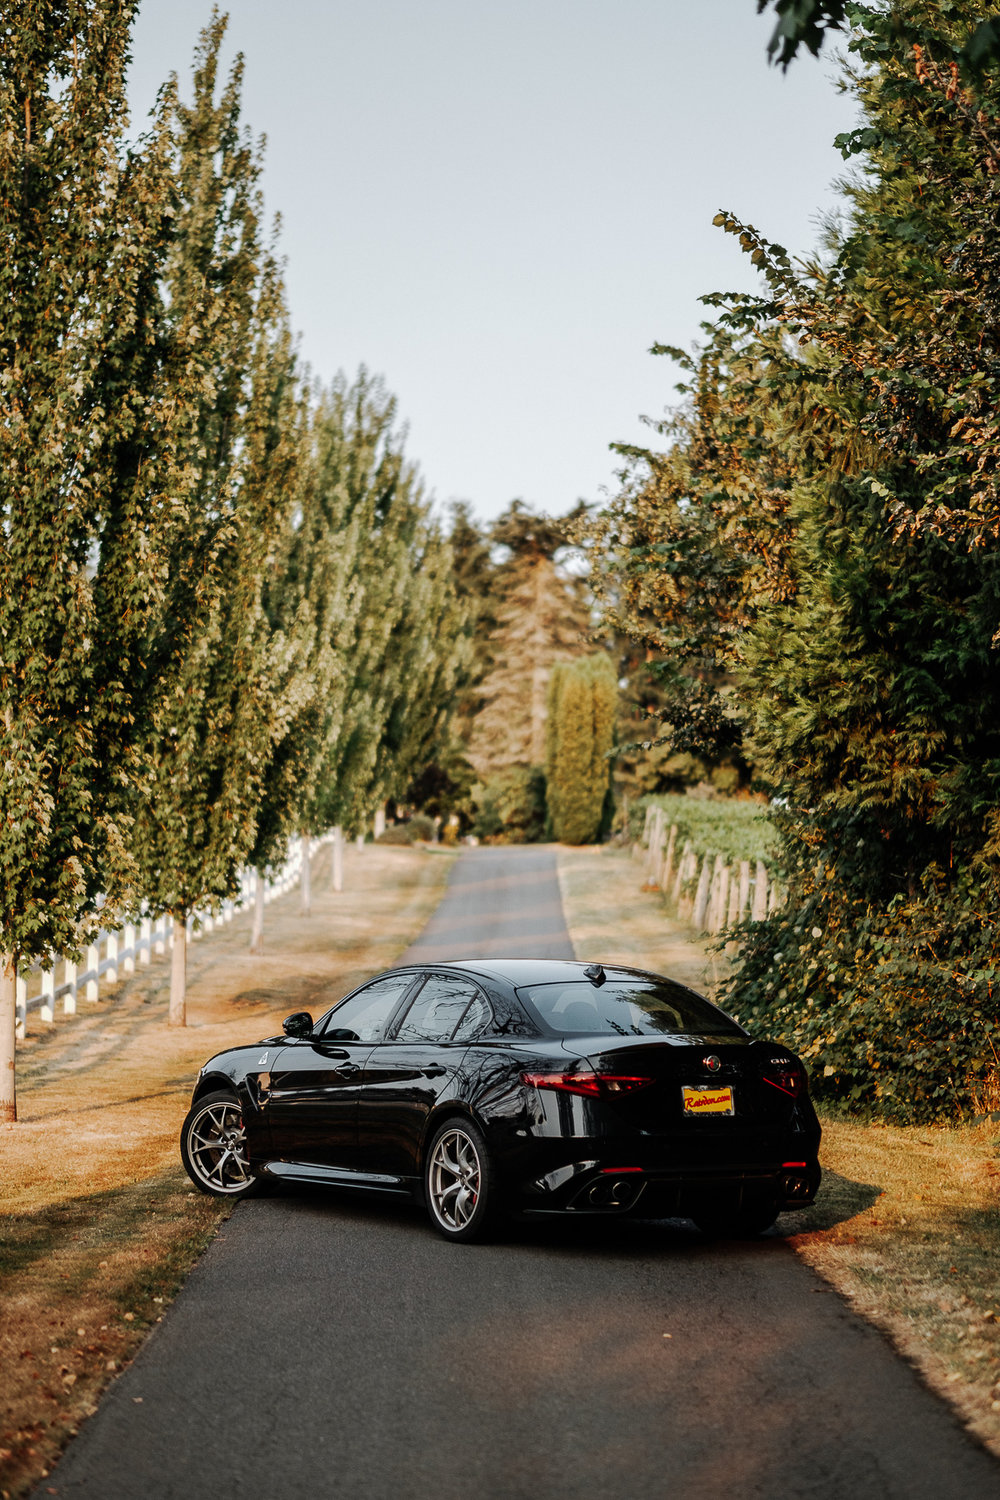 Alfa Romeo Giulia Ad- Rairdon's Alfa Romeo of Kirkland - Lifestyle Car Photography by Element Creative Co--8.jpg